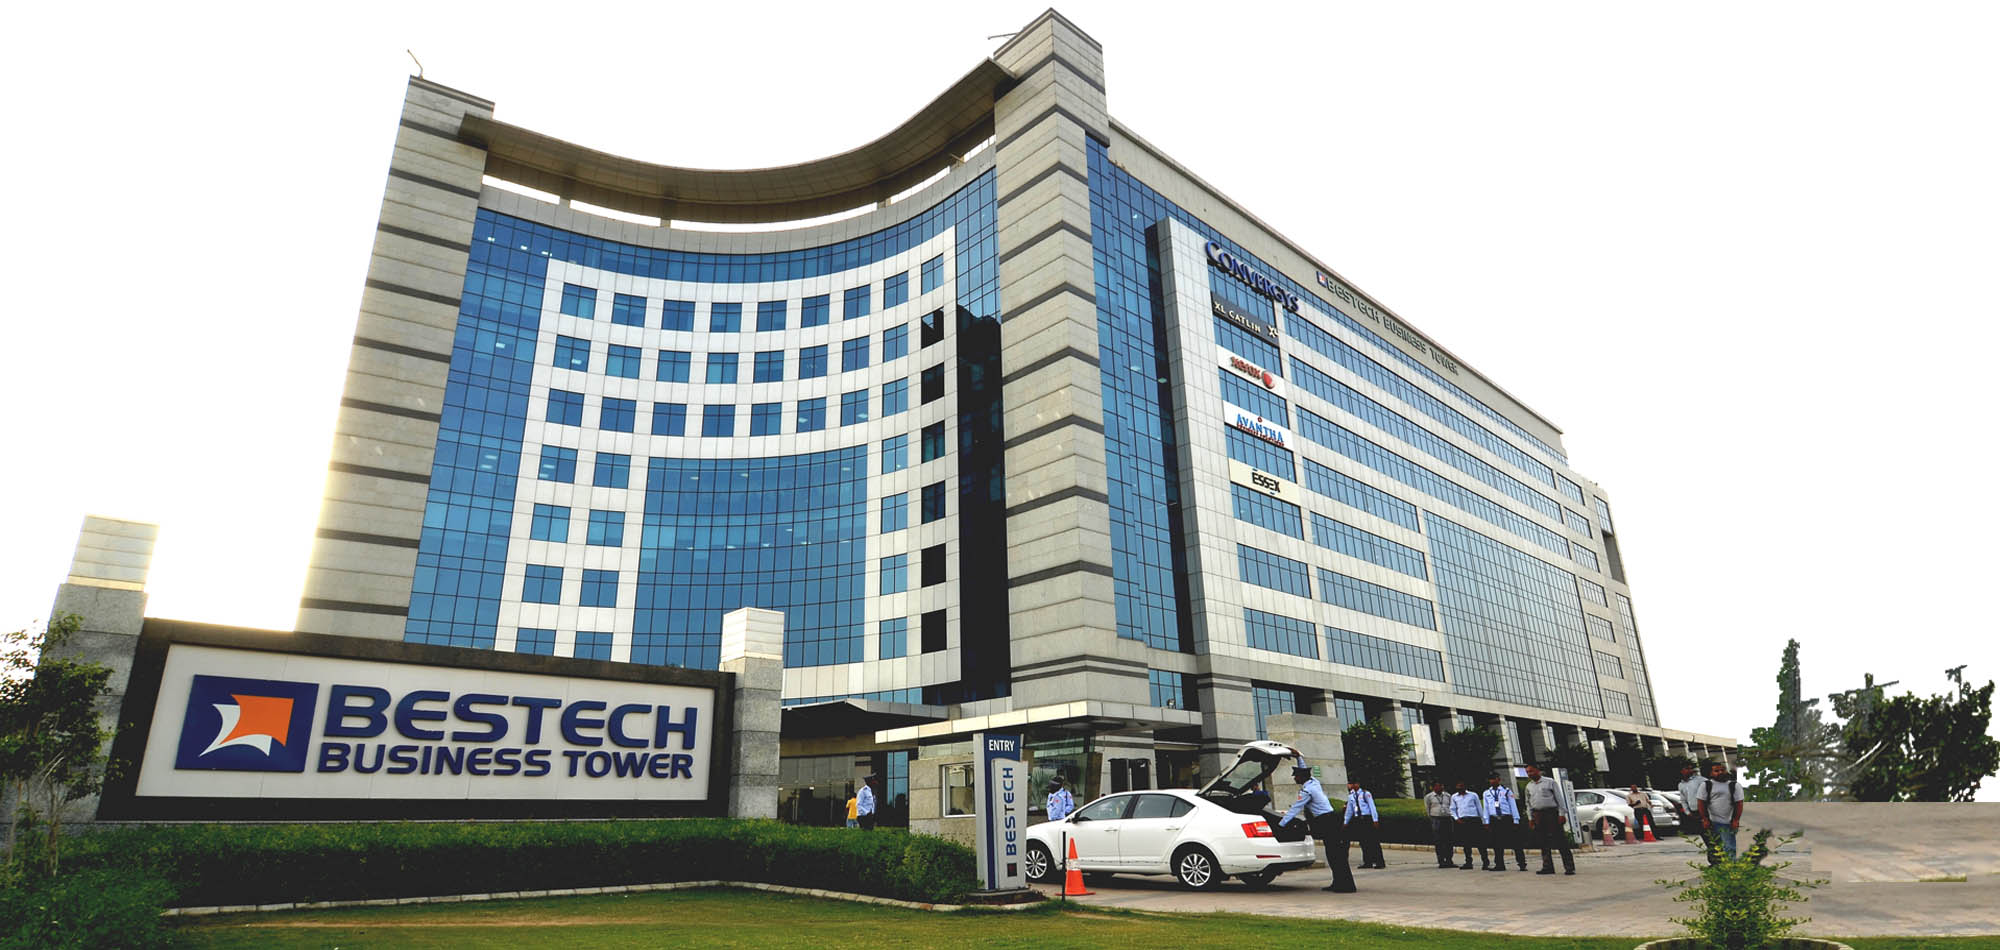 Bestech business tower sohna Gurgaon